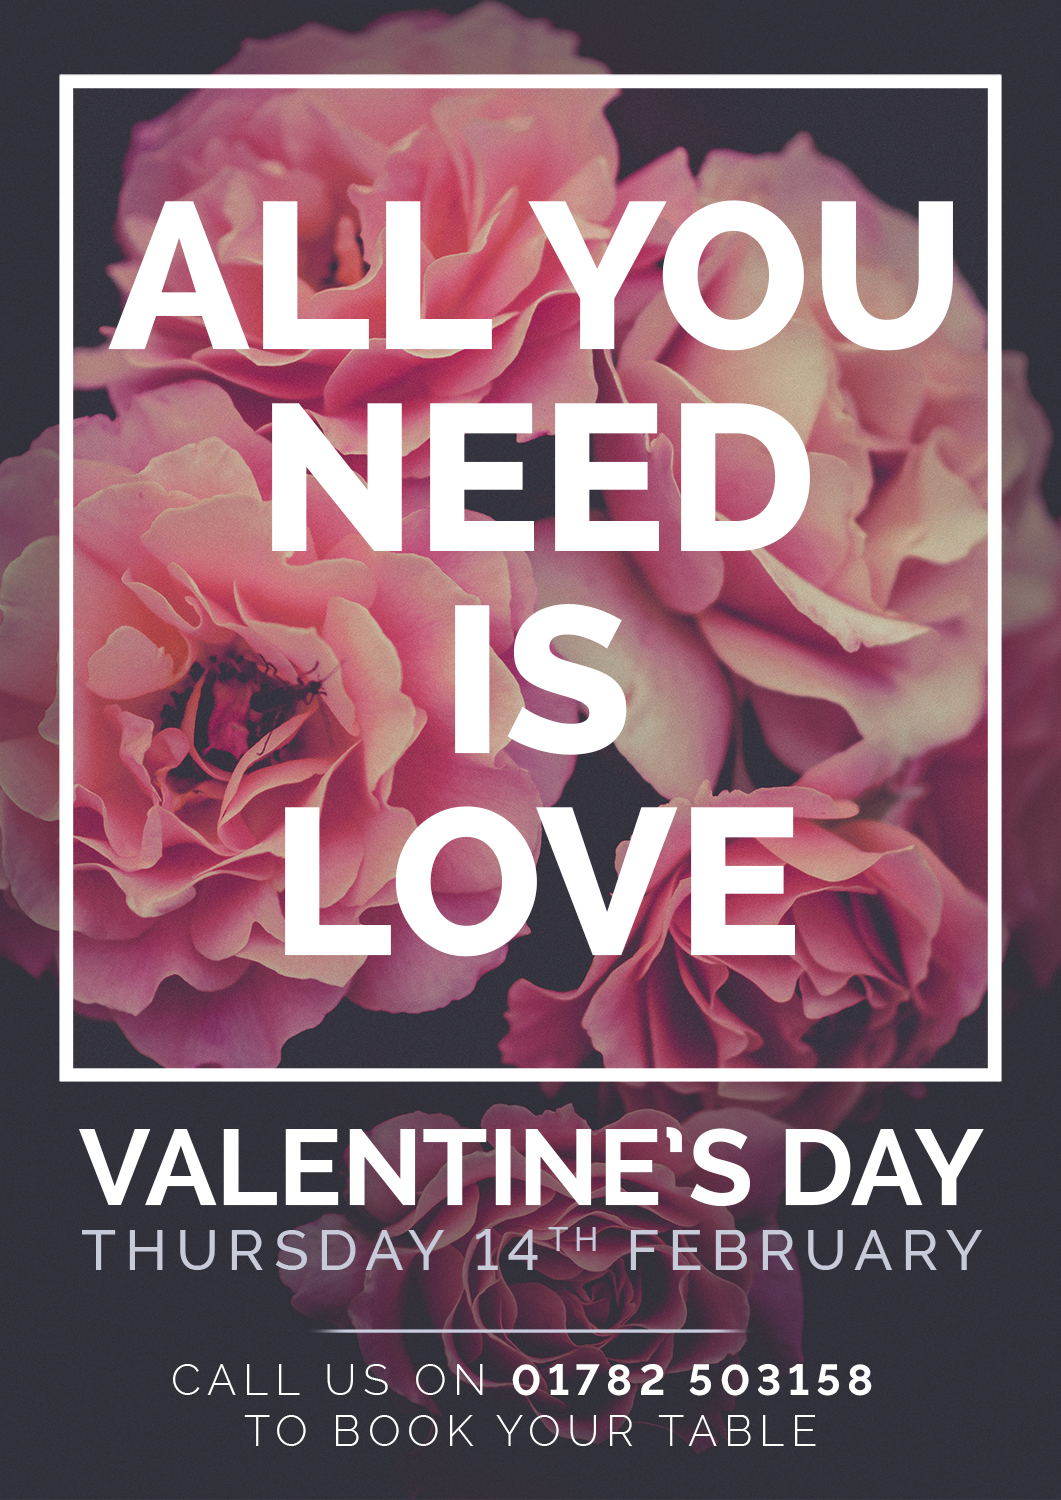 Come and join us for Valentine's 2019 to book a table call 01782-503158 option 2